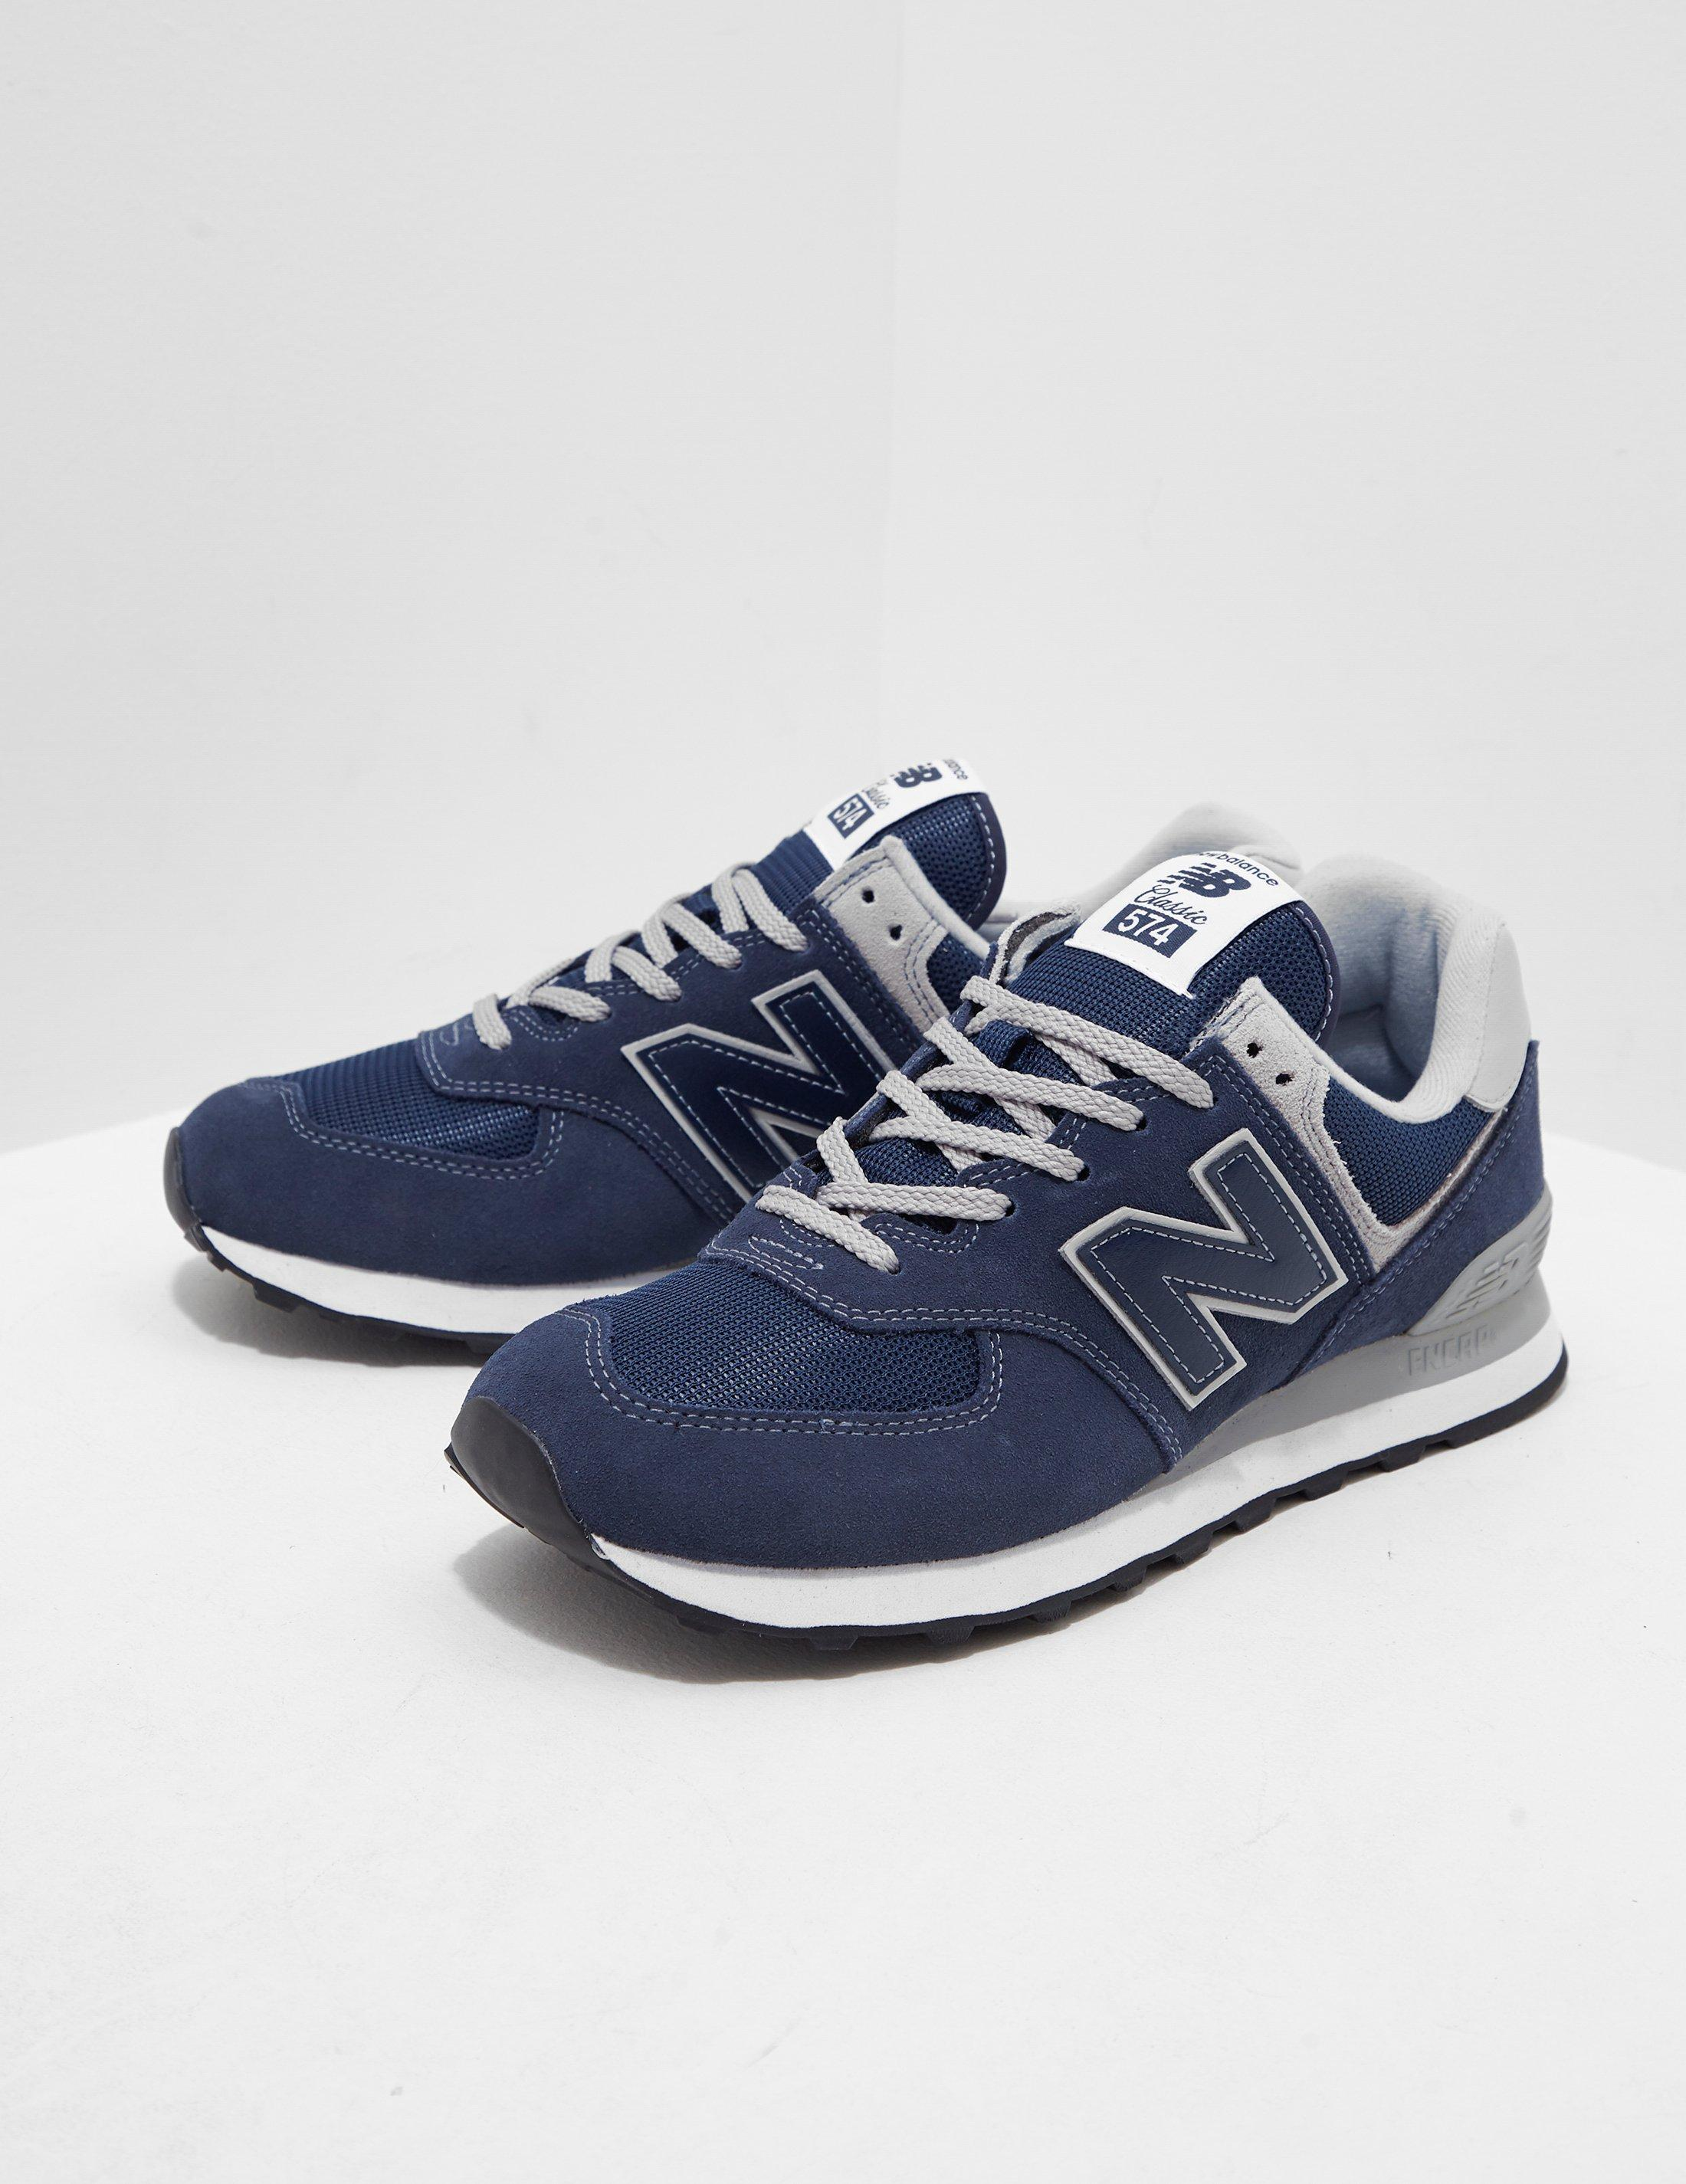 937a0aff4d New Balance 574 Core Navy Shoes in Blue for Men - Lyst